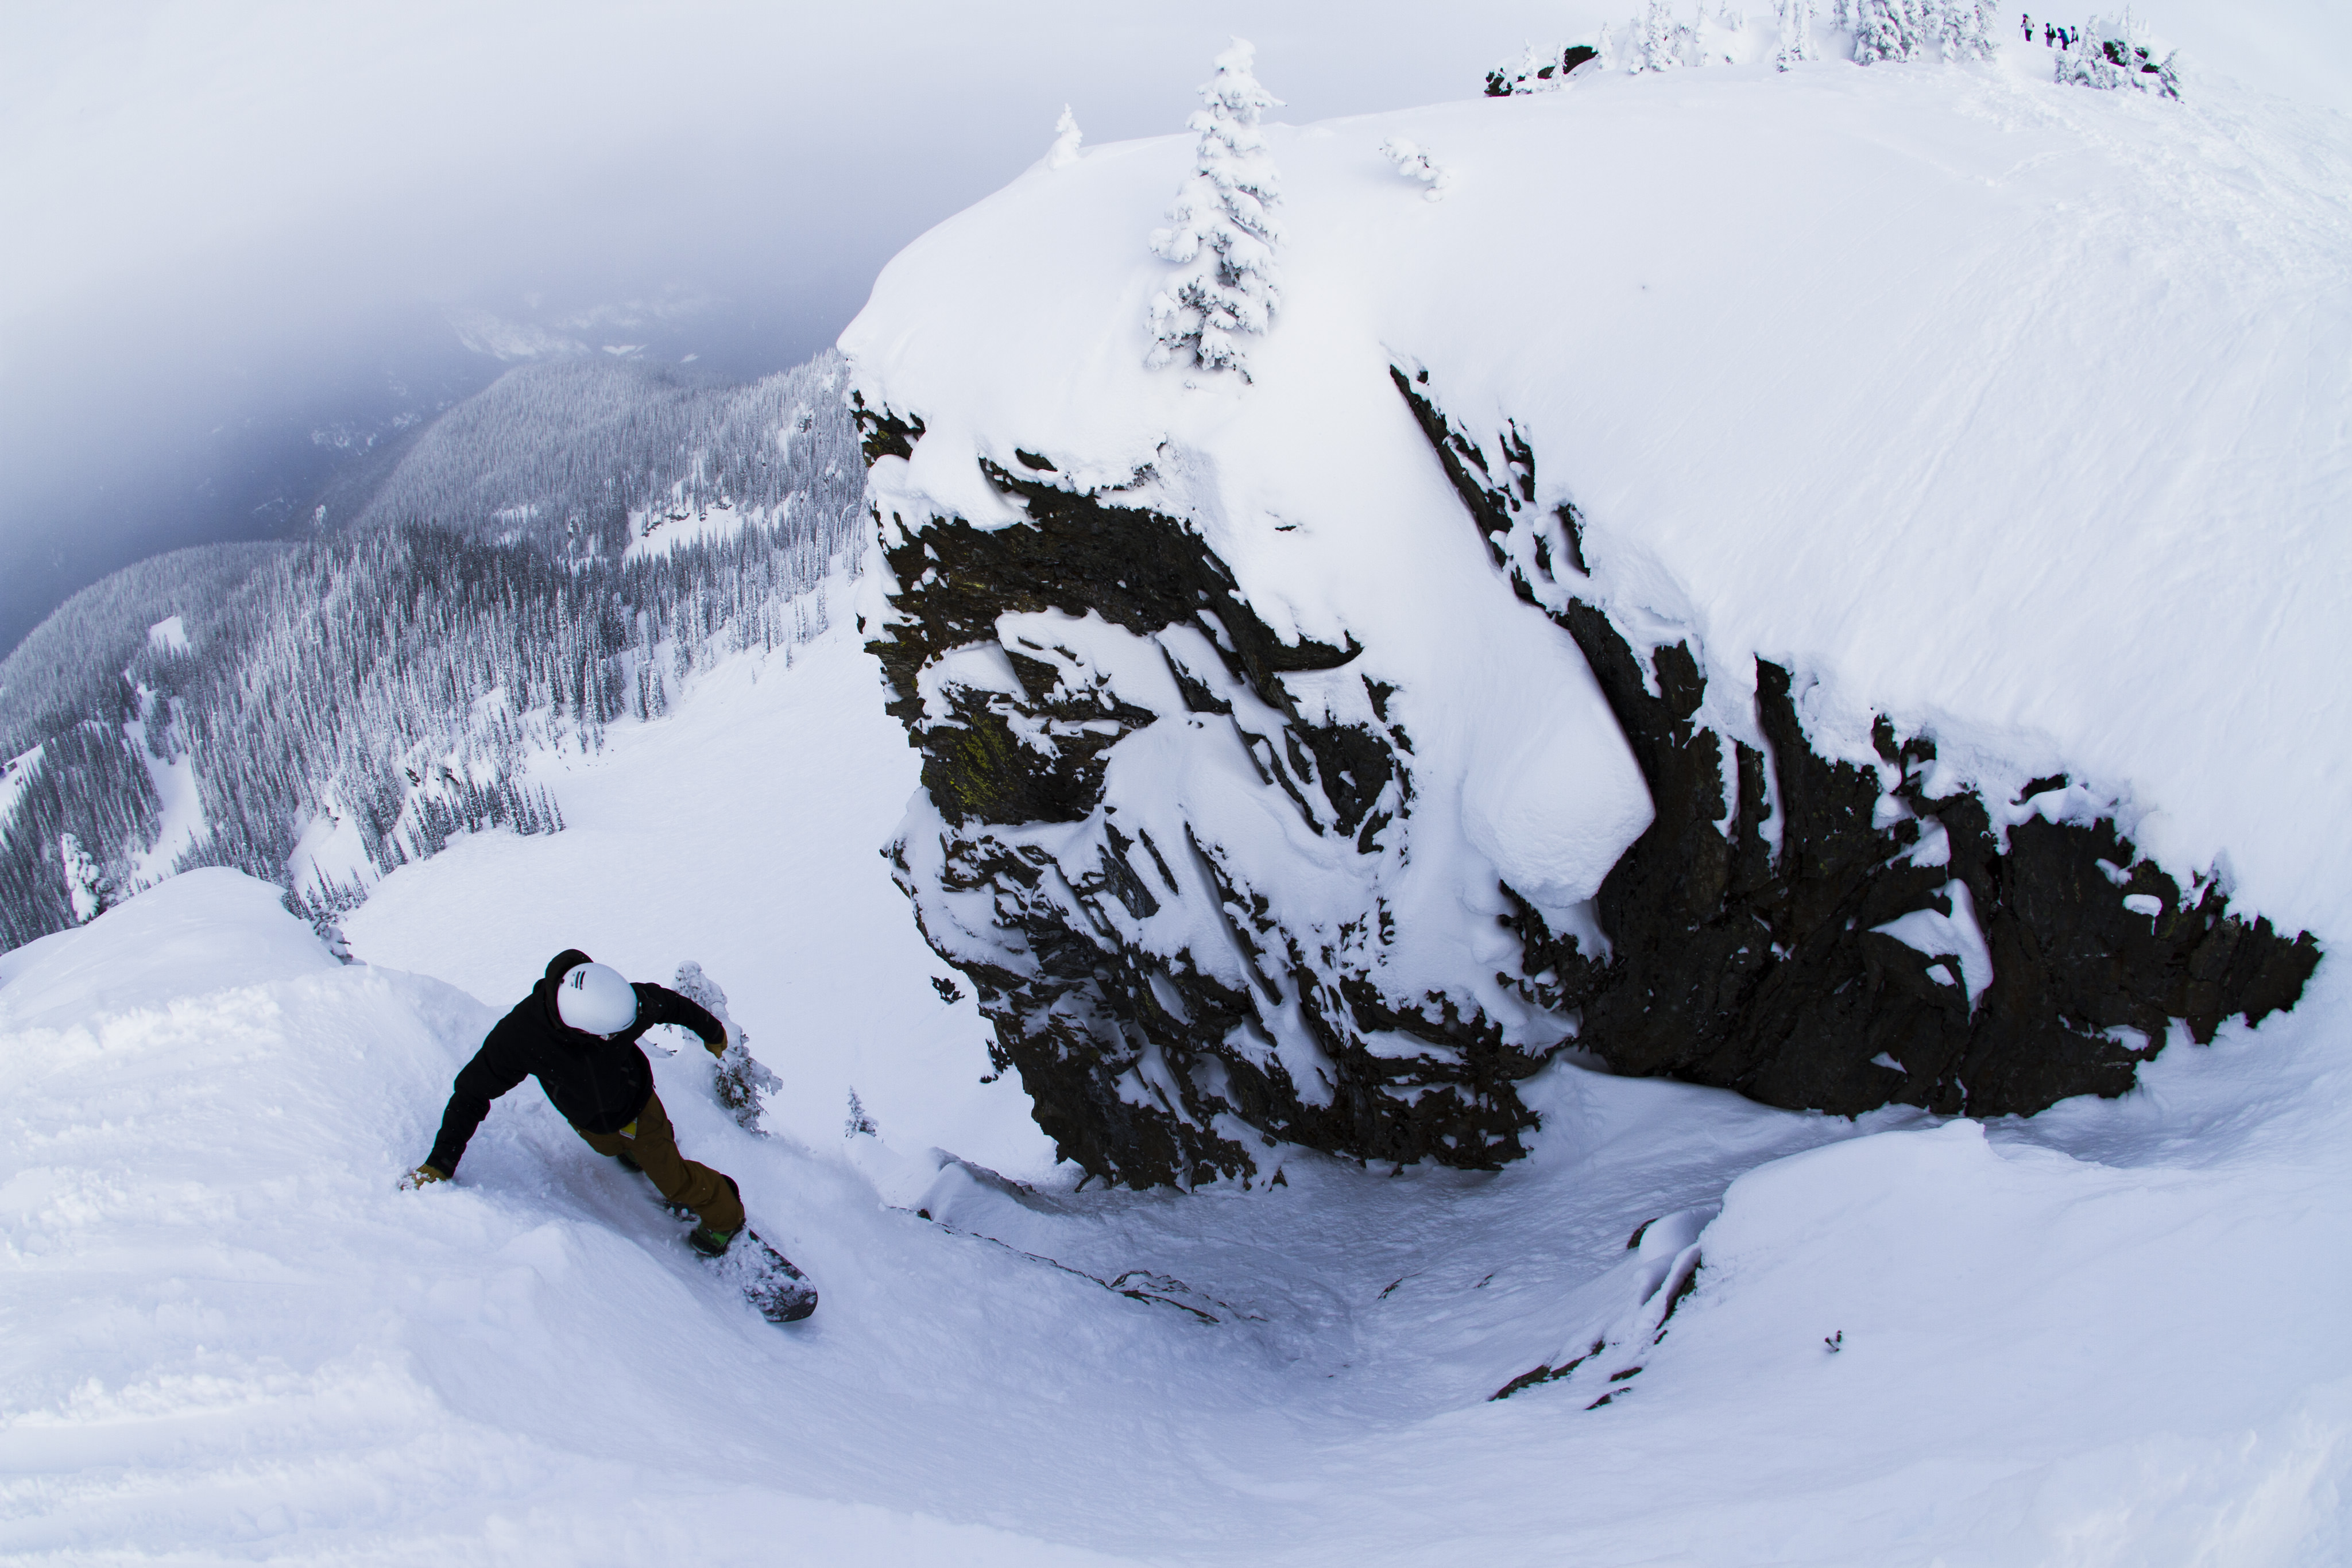 snowboarder dropping into a rocky chute